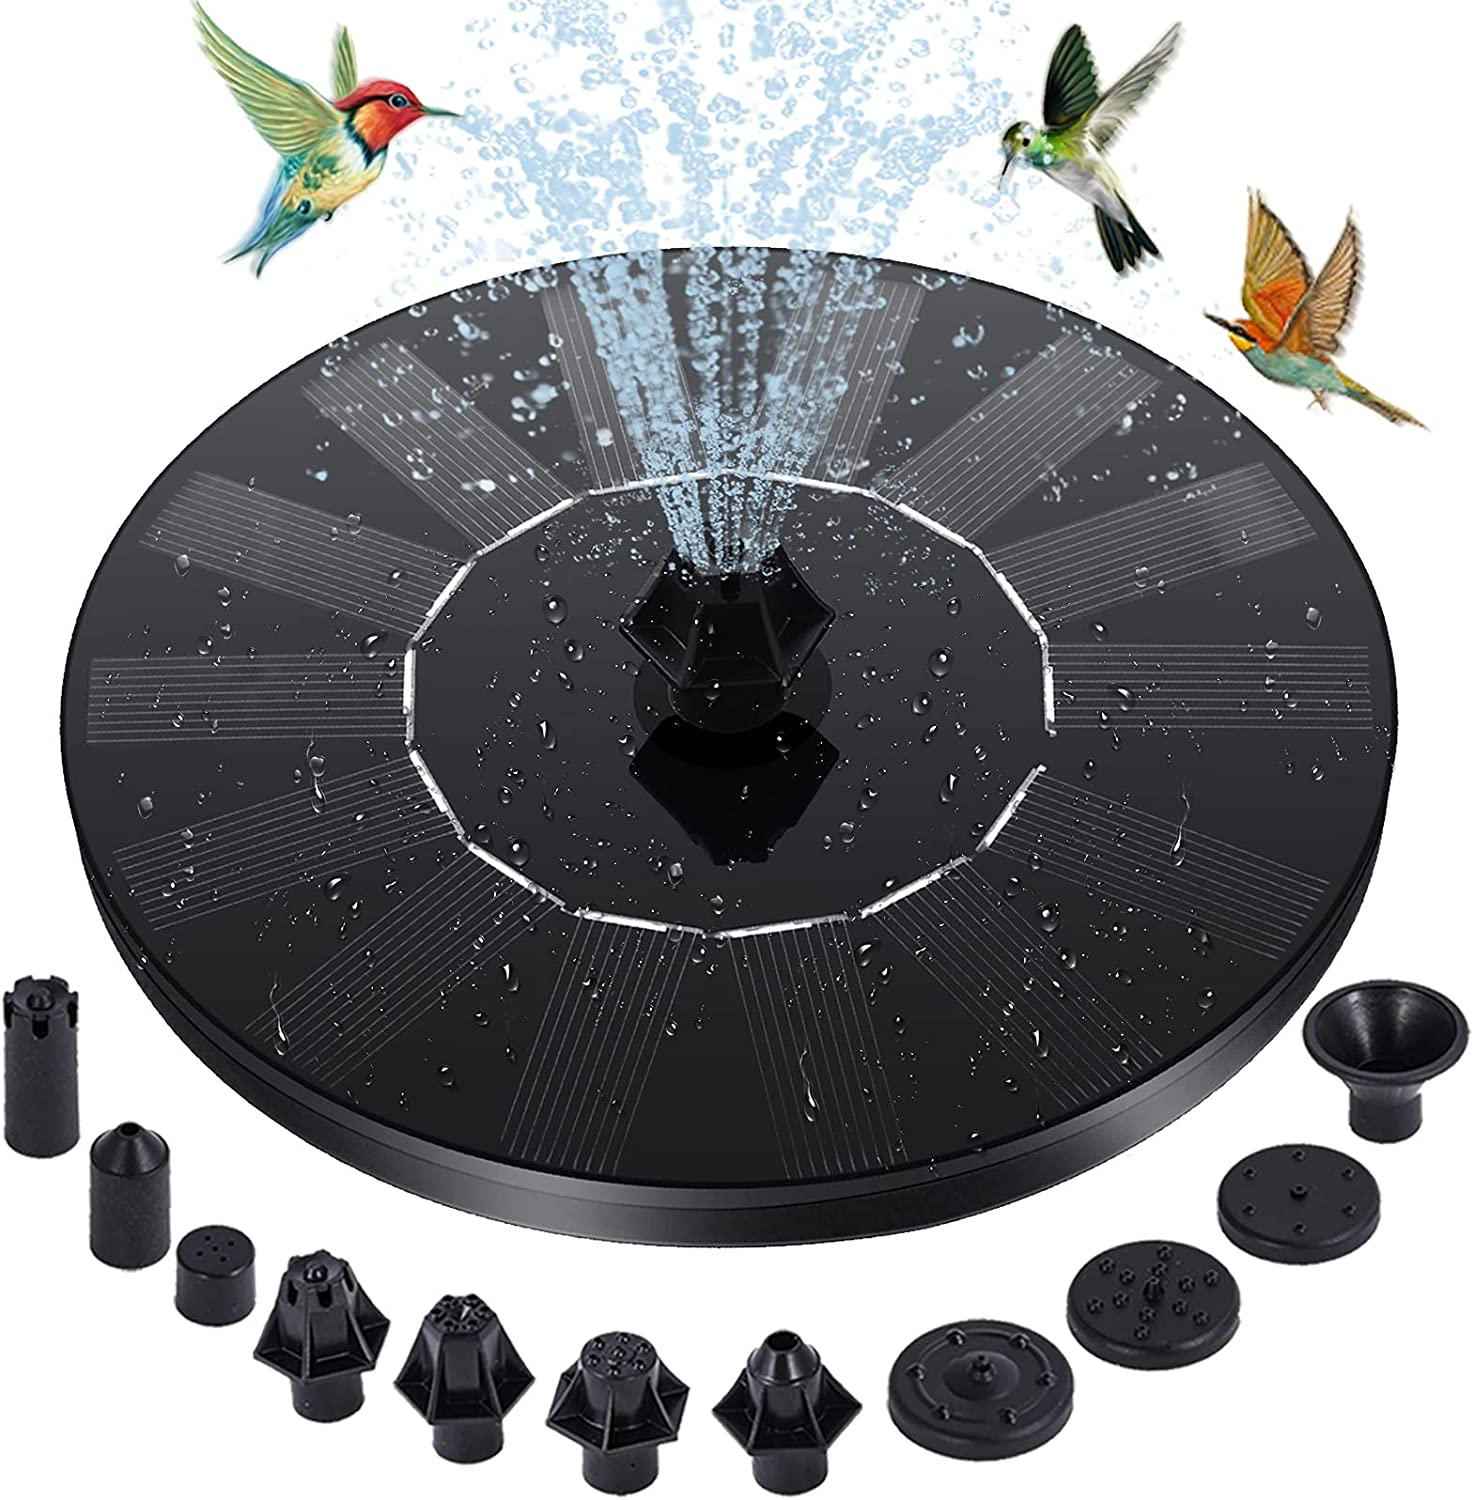 RIOFLY Solar Fountain - 1.4W Upgraded Solar Fountain Water Pump, Free Standing Floating Solar Powered Fountain Pump with 10 Nozzles, 4 Fixer, for Bird Bath, Pond, Pool, Outdoor, Garden